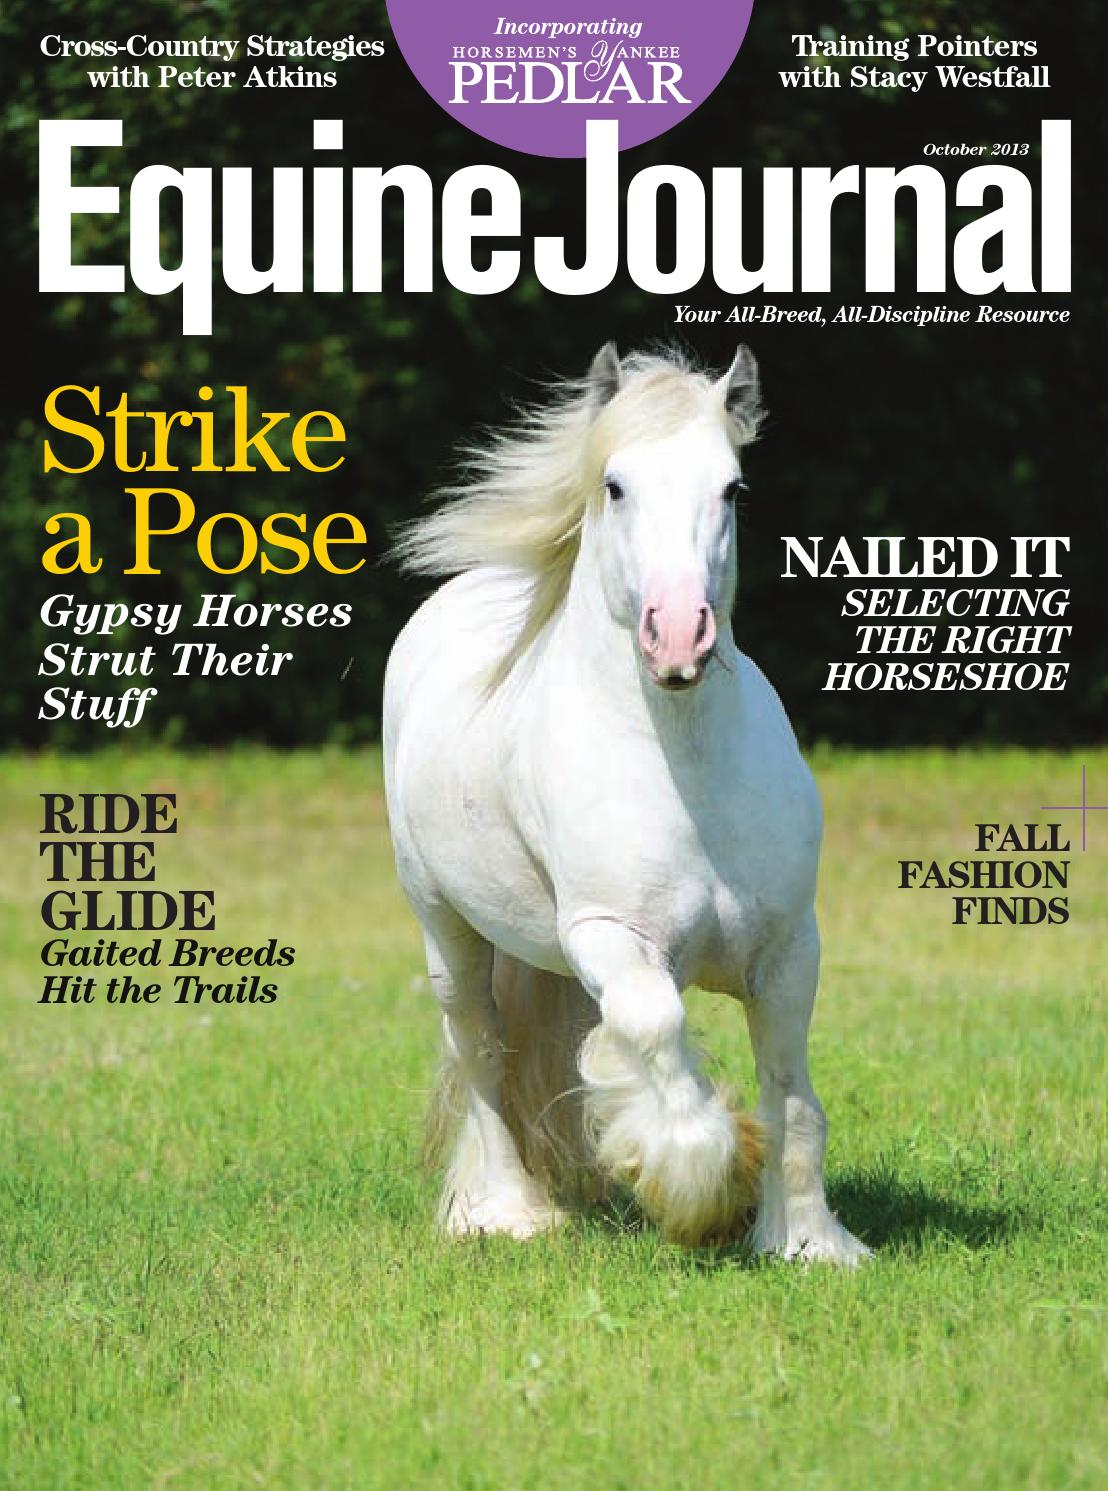 Equine Journal (October 2013) by Equine Journal - issuu